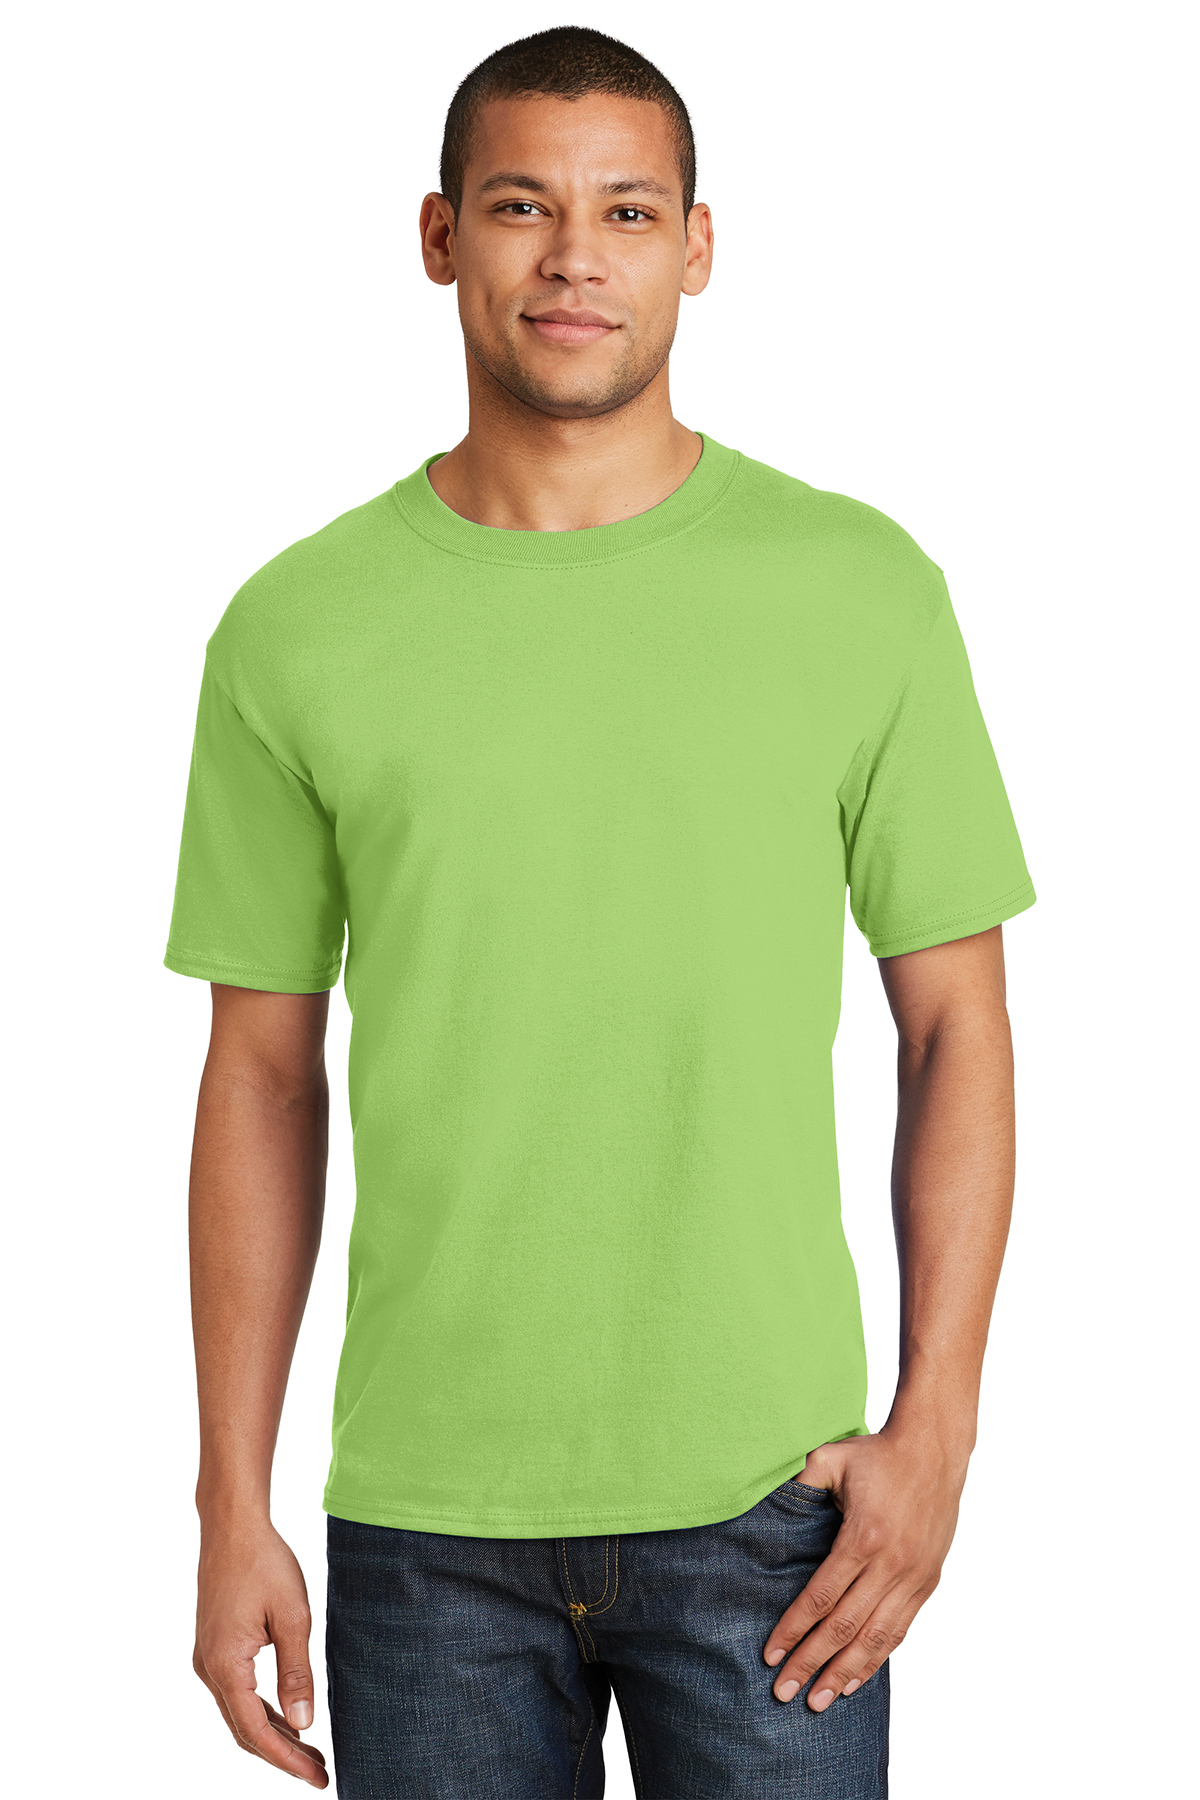 34fabee60 Hanes® Beefy-T® - 100% Cotton T-Shirt | 6-6.1 100% Cotton | T-Shirts ...